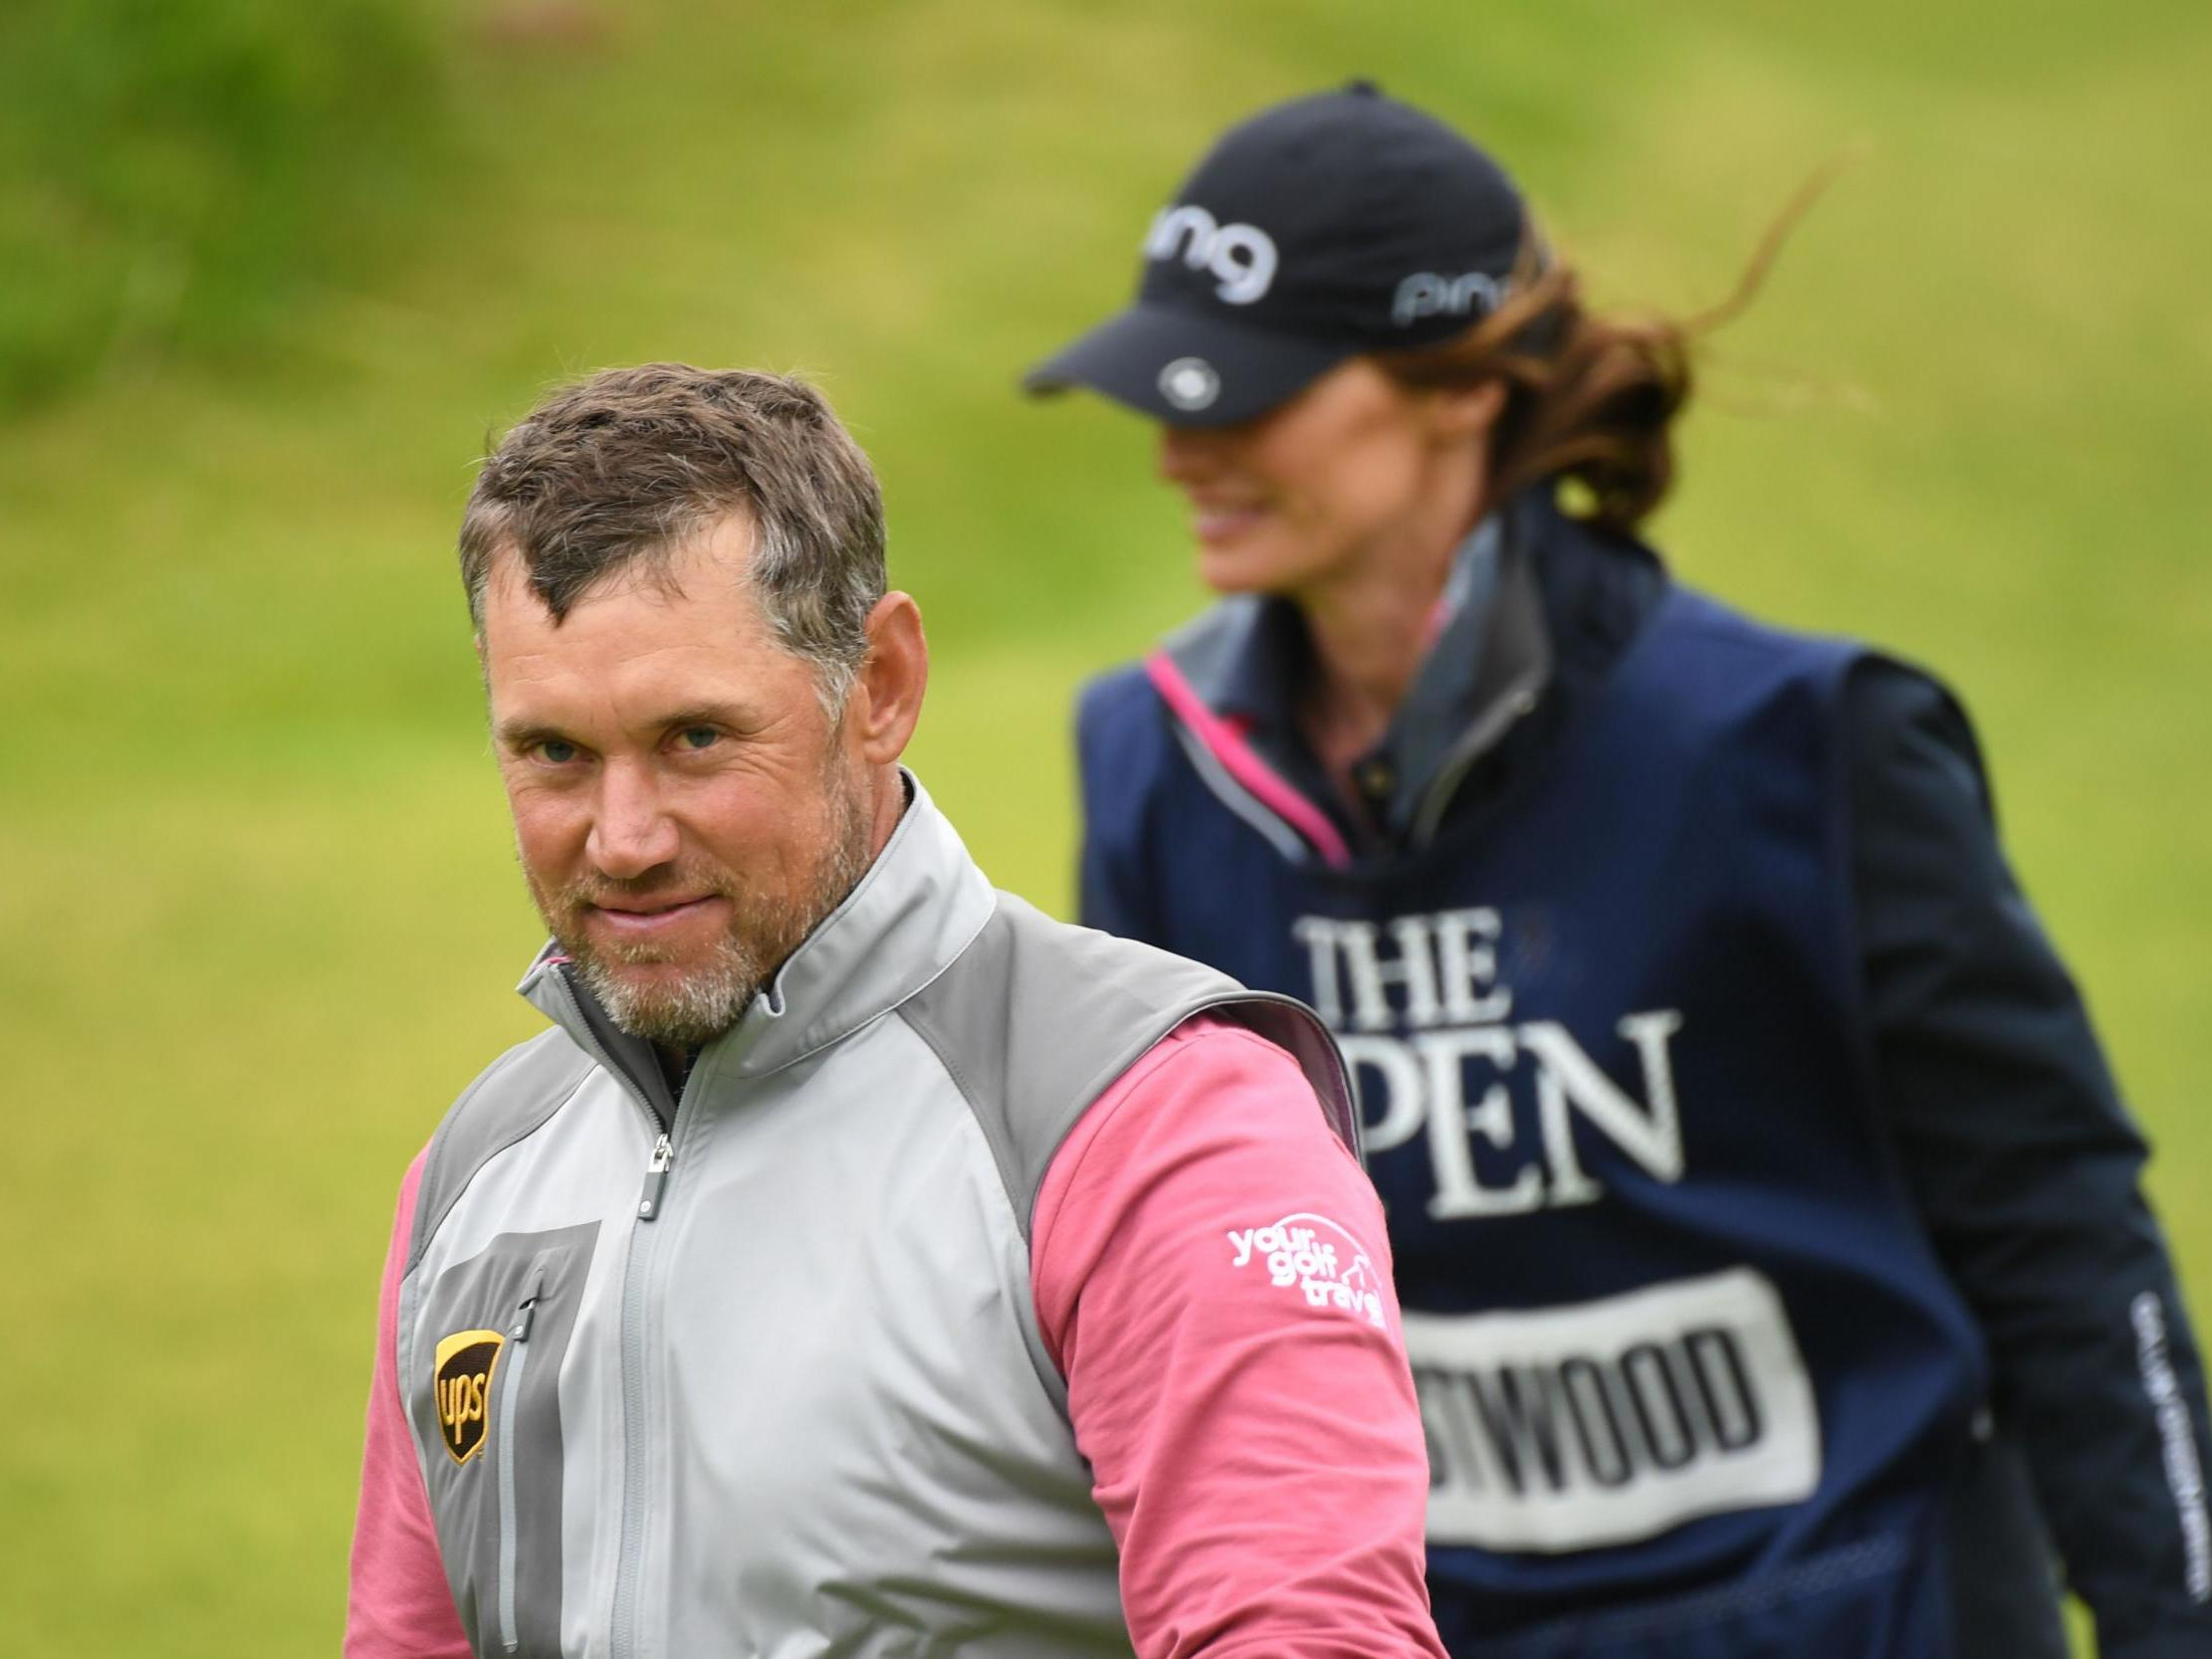 The Open 2019: Lee Westwood insists age is just a number as he sets sights on Masters success